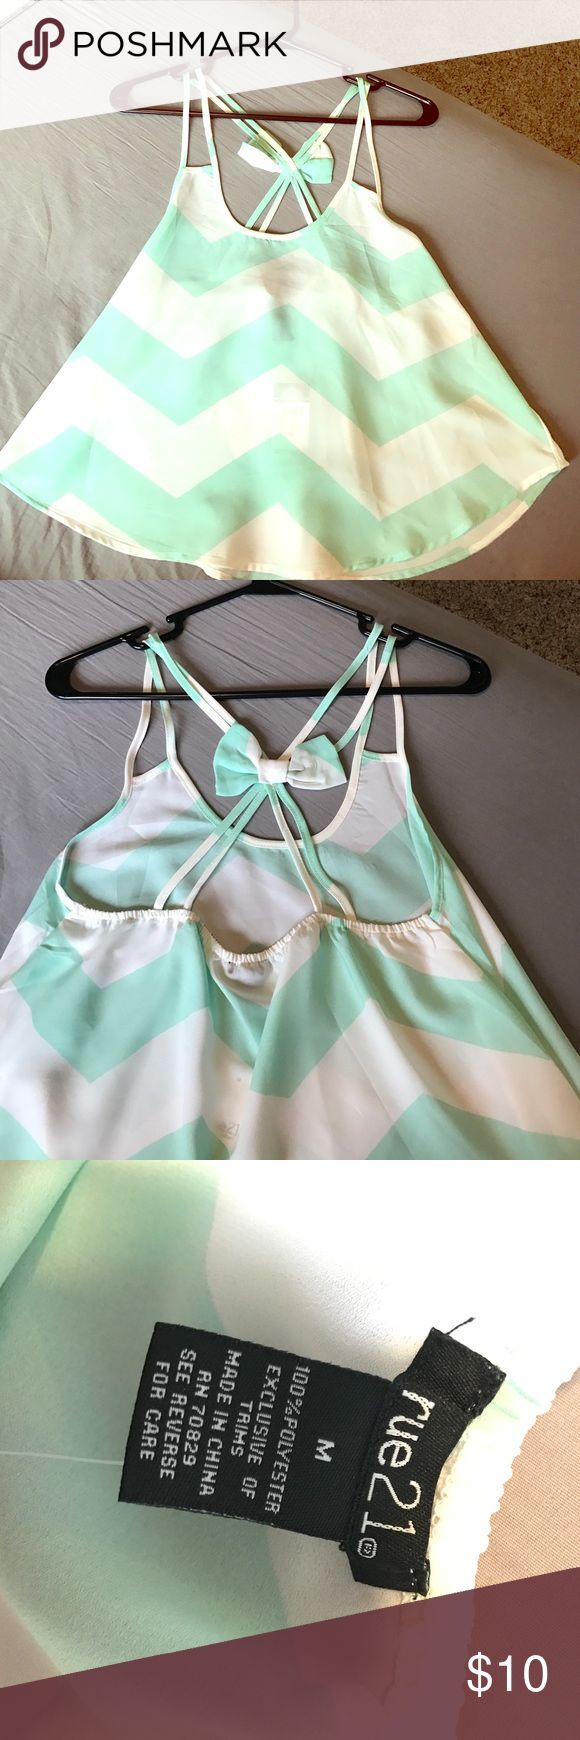 Rue 21 tank top This top would look perfect with just about any summer outfit. It is very light and float, perfect for those hot summer days. Never worn! Rue21 Tops Tank Tops